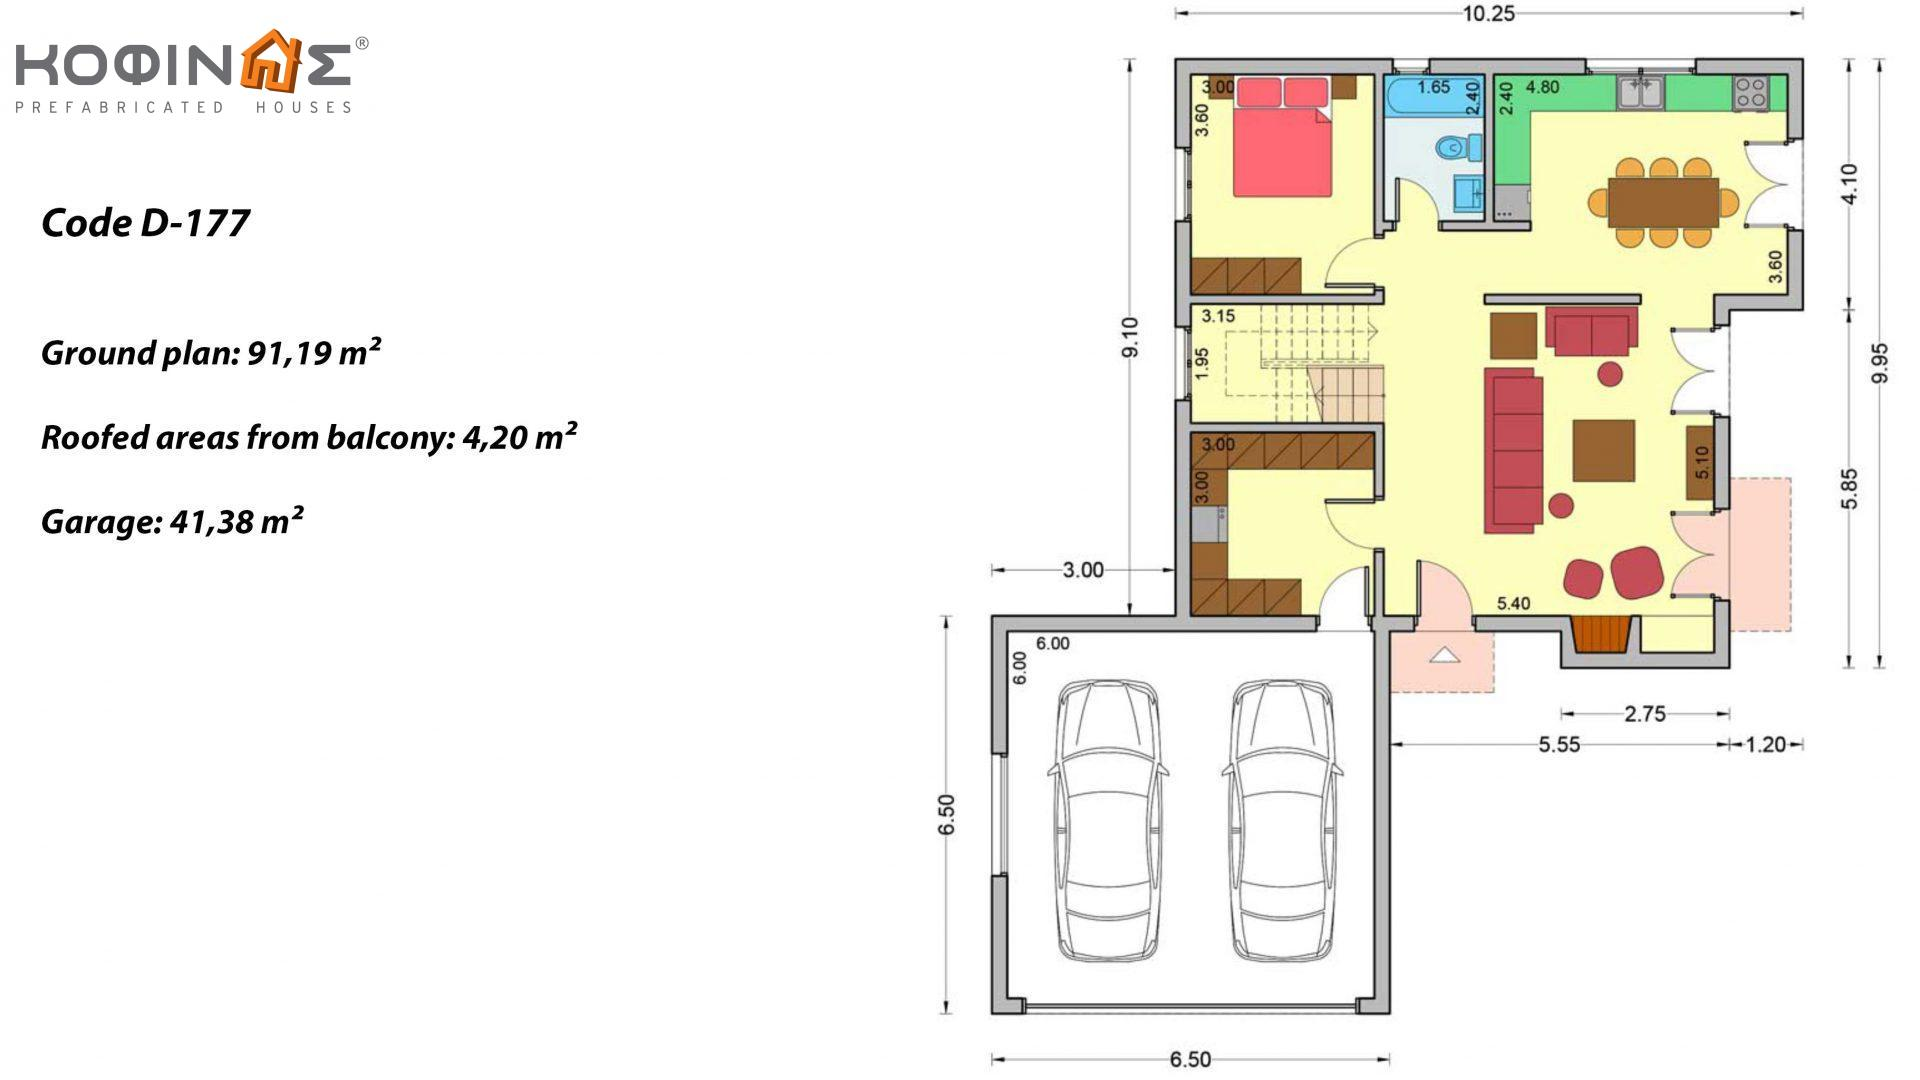 2-story house D-177, total surface of 177,46 m², +Garage 41.38 m²(=218.84 m²),roofed areas 4.20 m²,balconies 17.04 m²